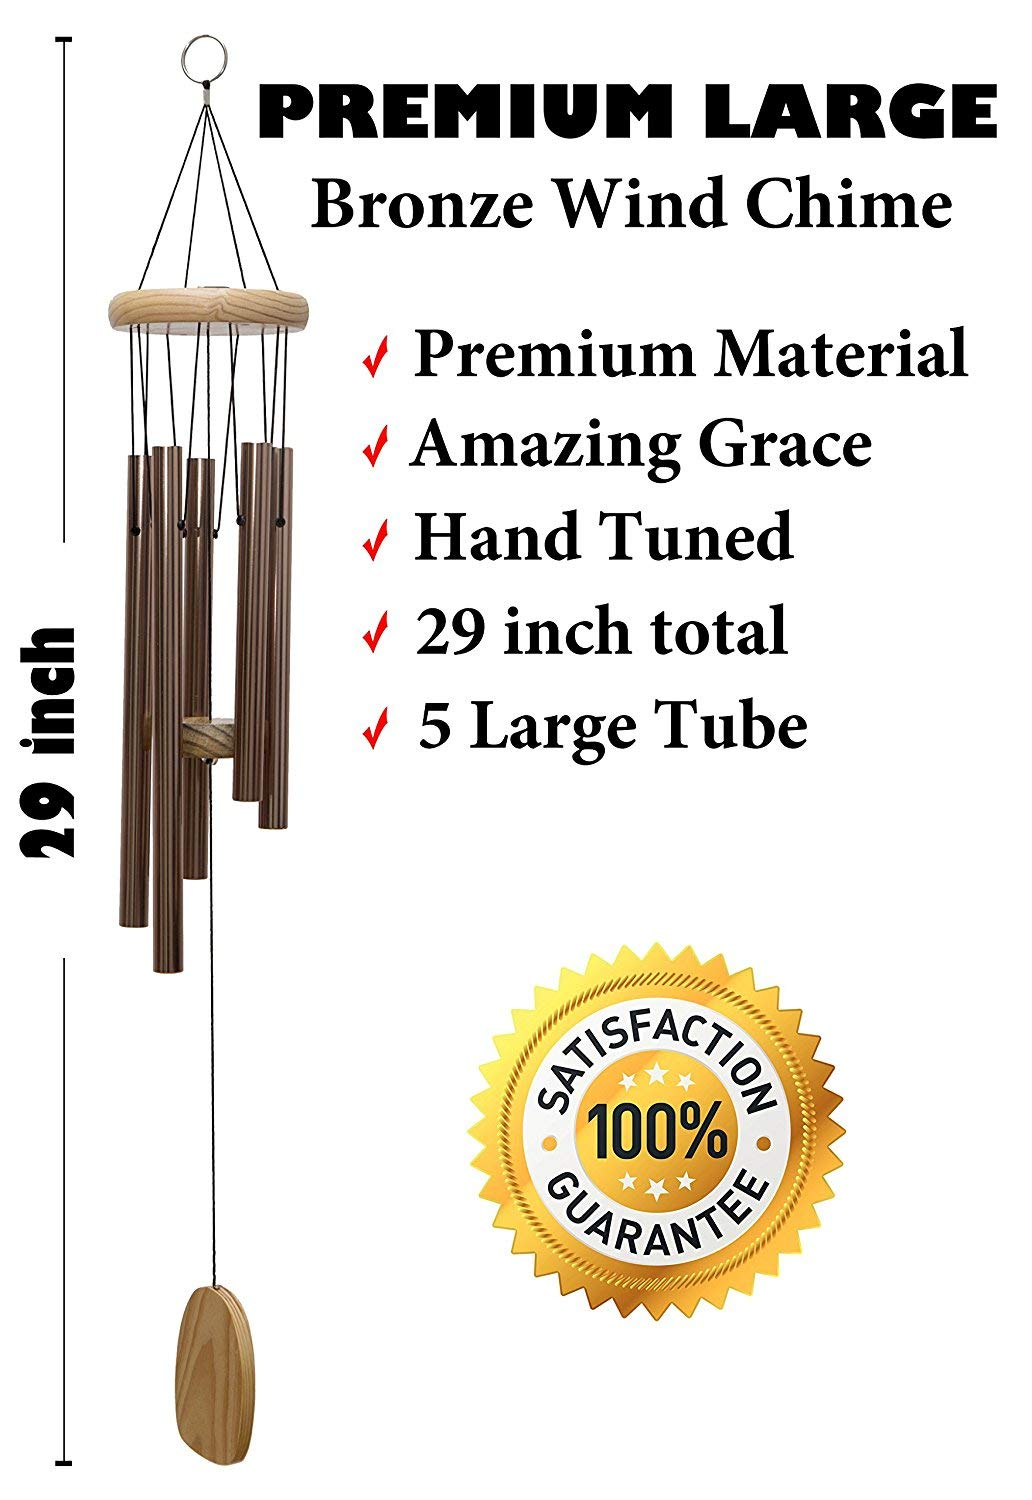 Wind Chimes Outdoor - Deep Tone - Hand Tuned - Loud Wind Chimes - Outdoor, Indoor, Garden or Patio - Aluminum Tubes (Color: Premium Bronze) - Also for Funeral or Memorial